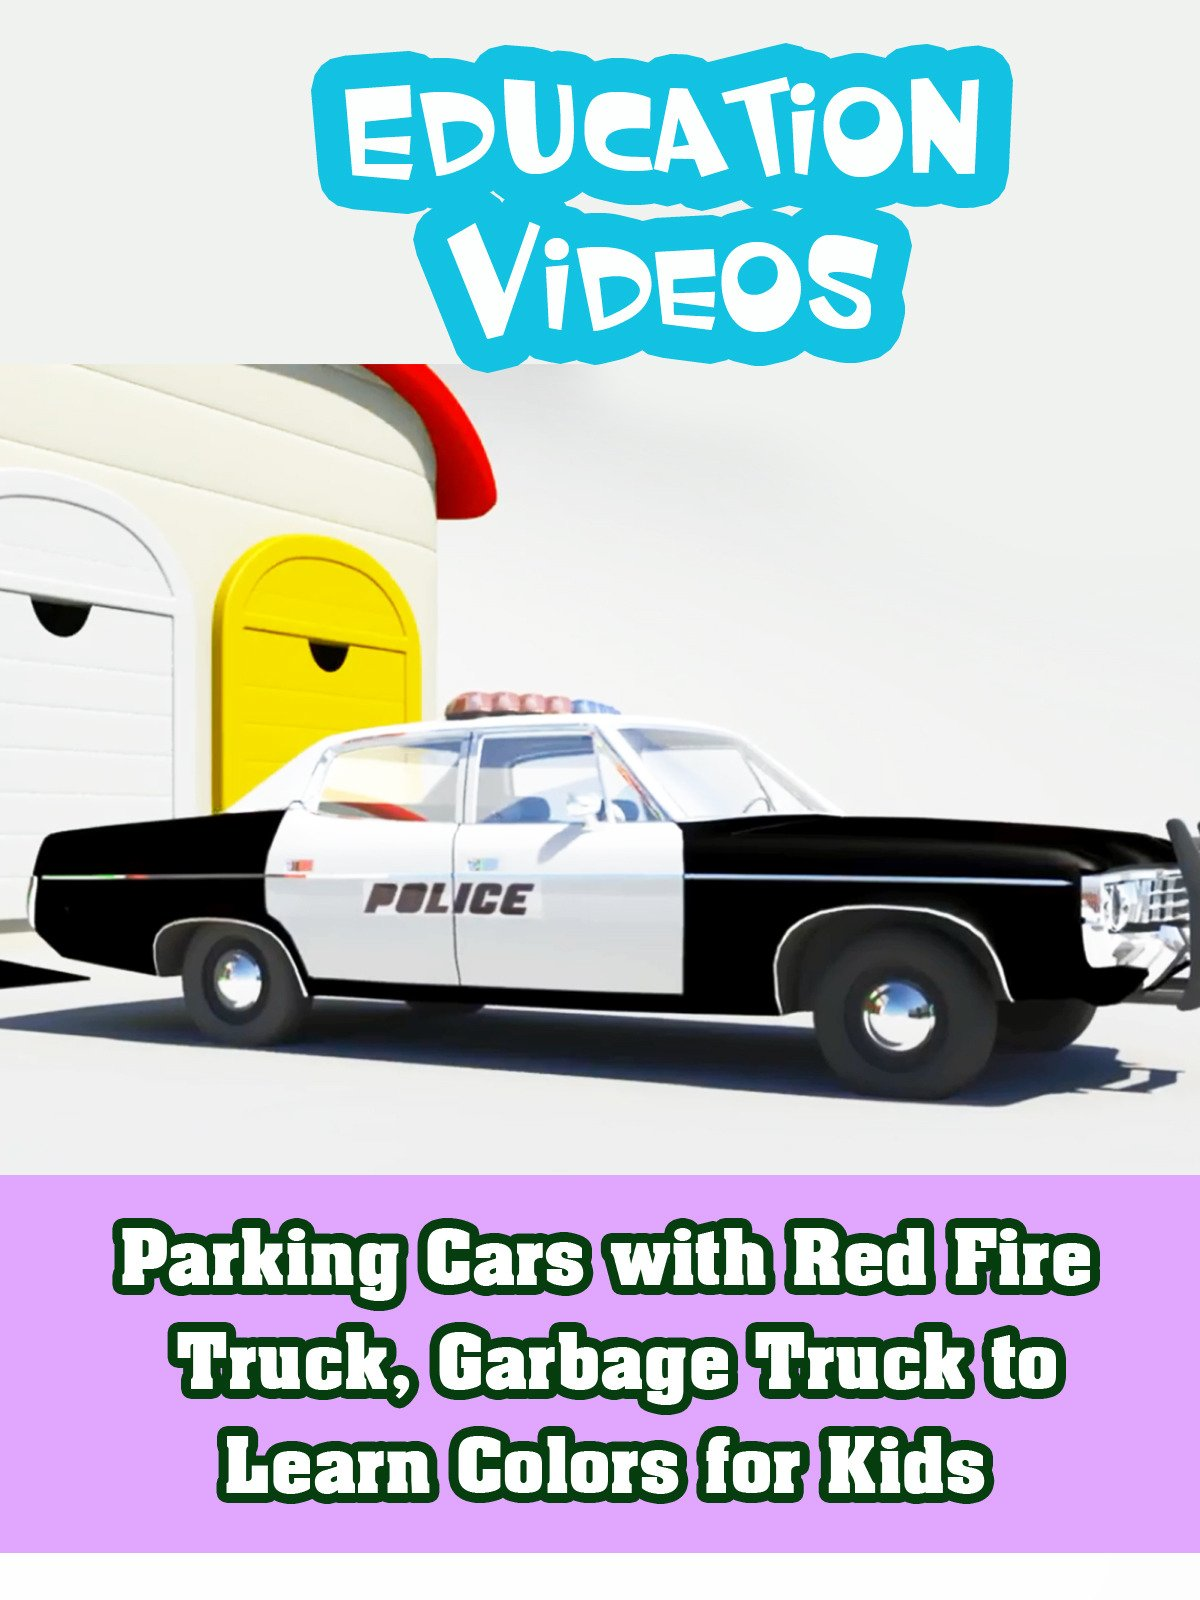 Parking Cars with Red Fire Truck, Garbage Truck to Learn Colors for Kids